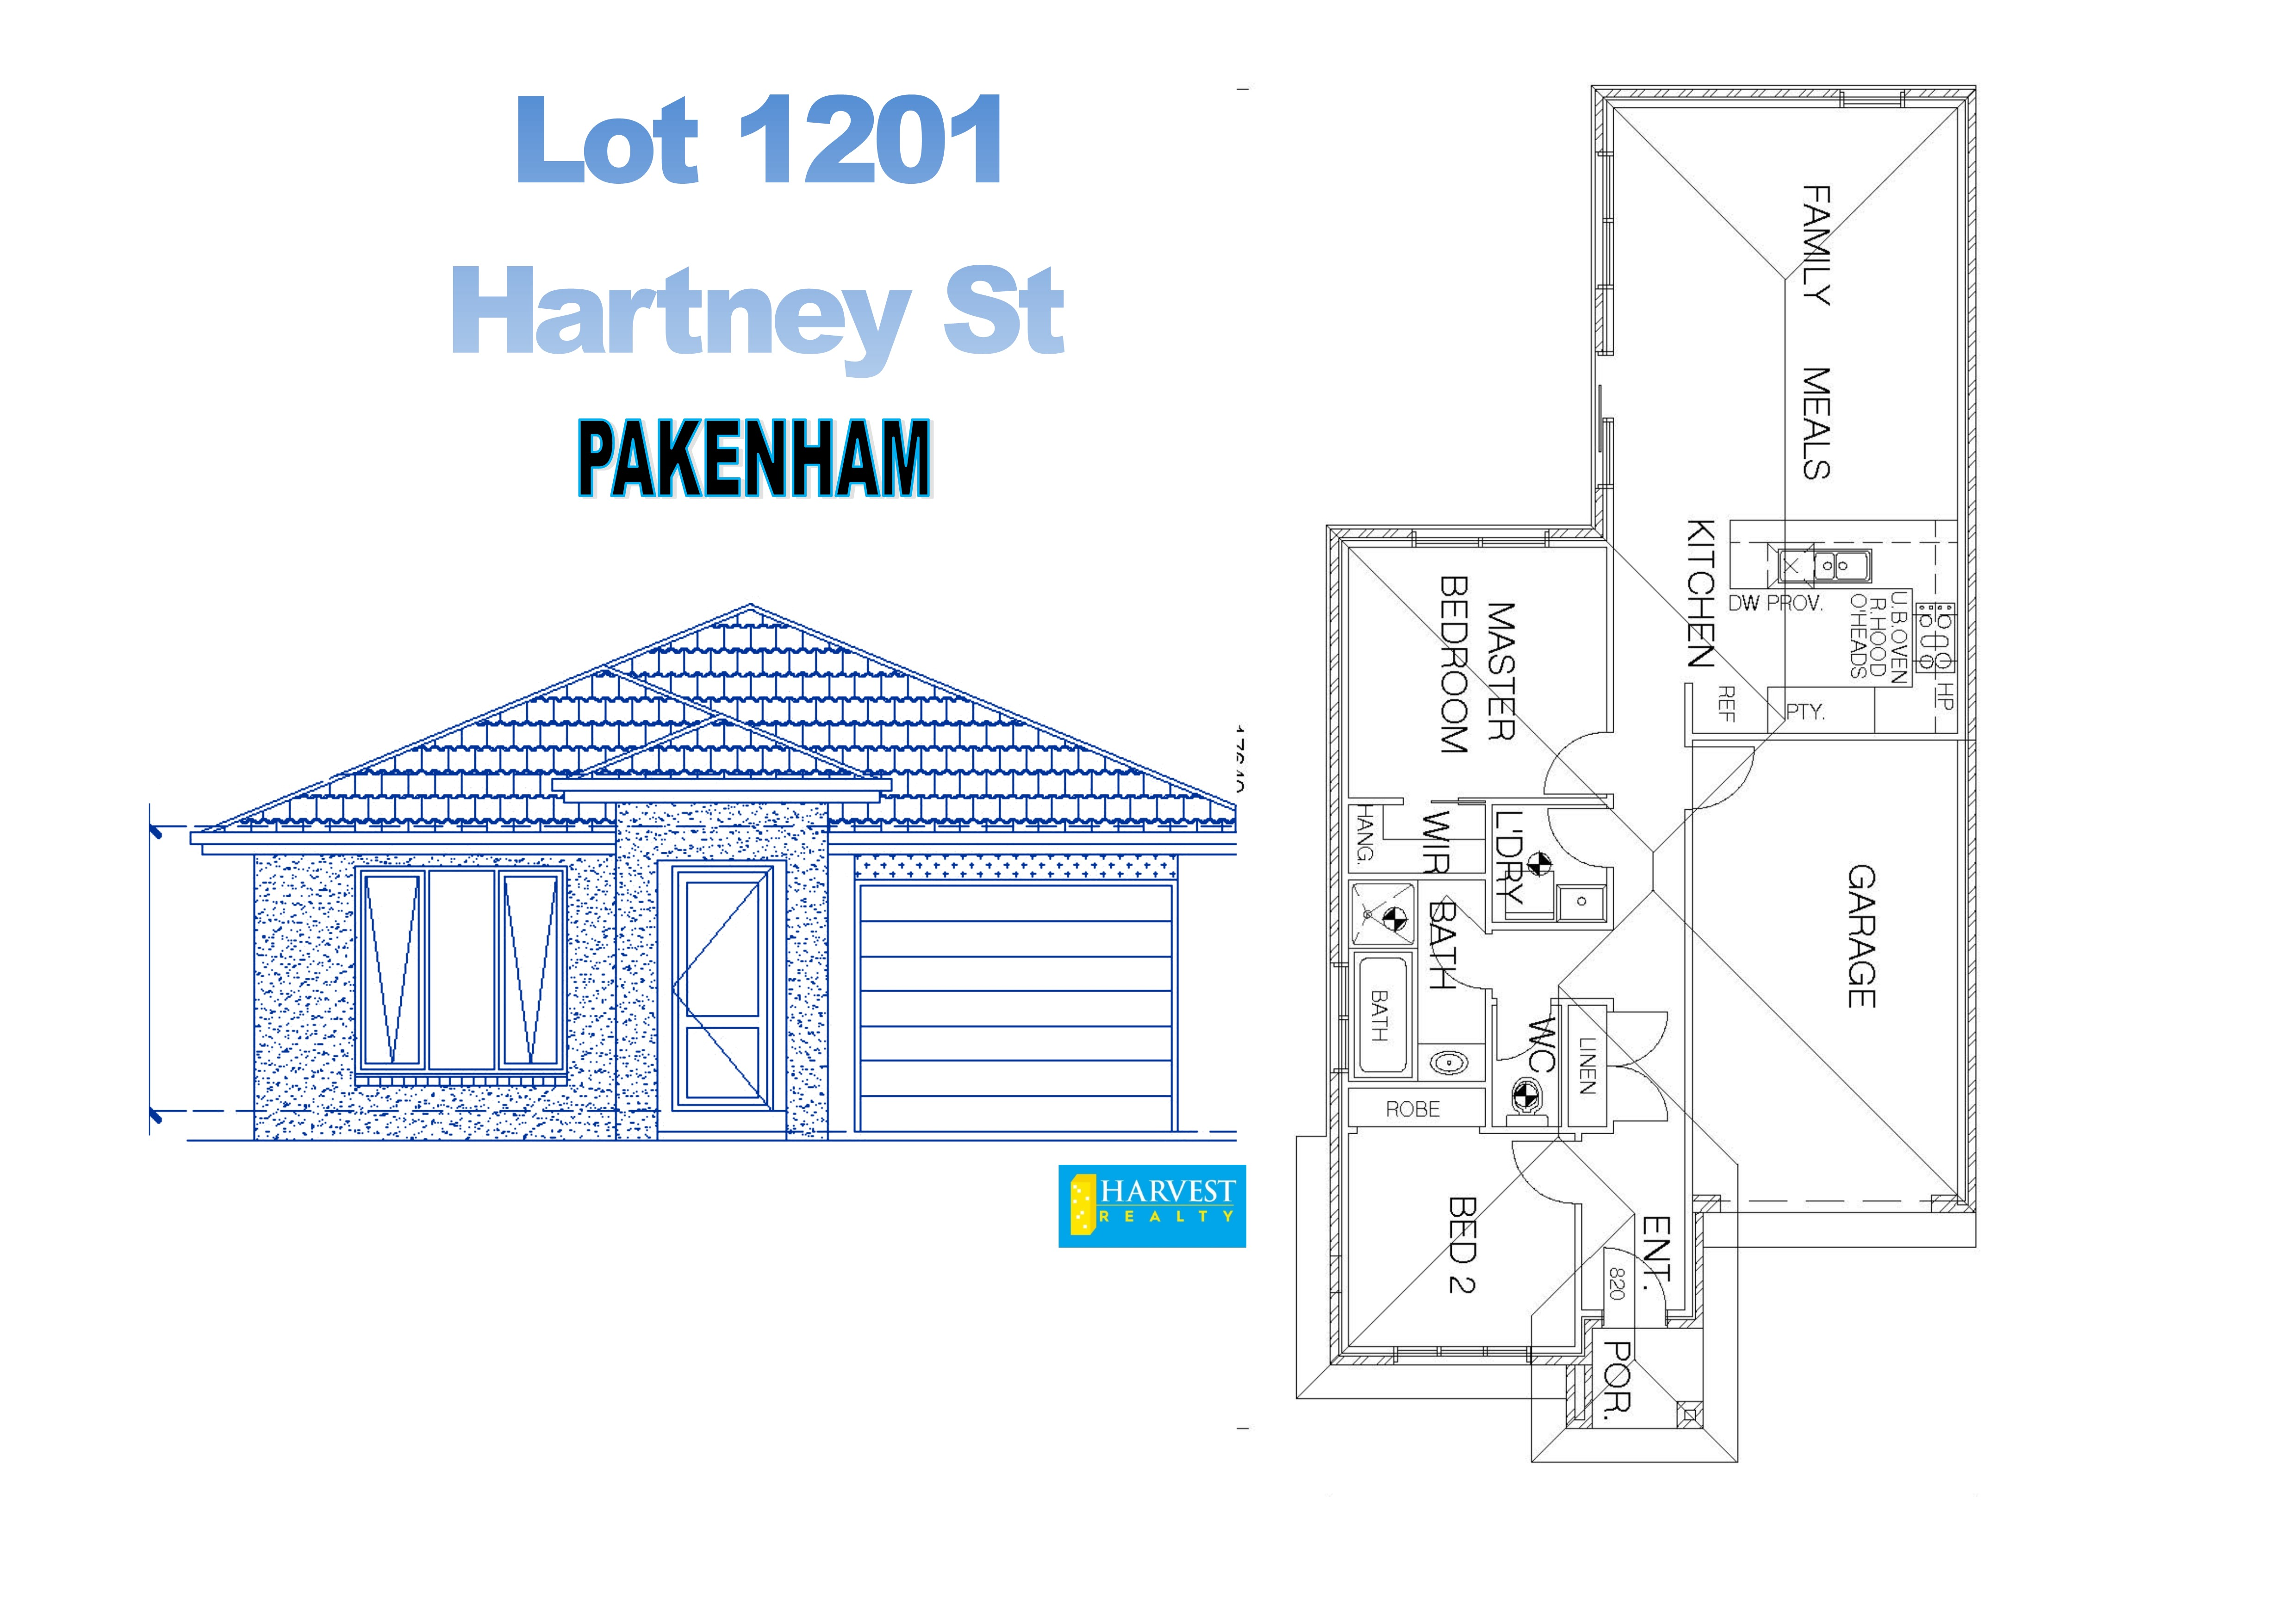 Lot 1201 Hartney Ave PAKENHAM